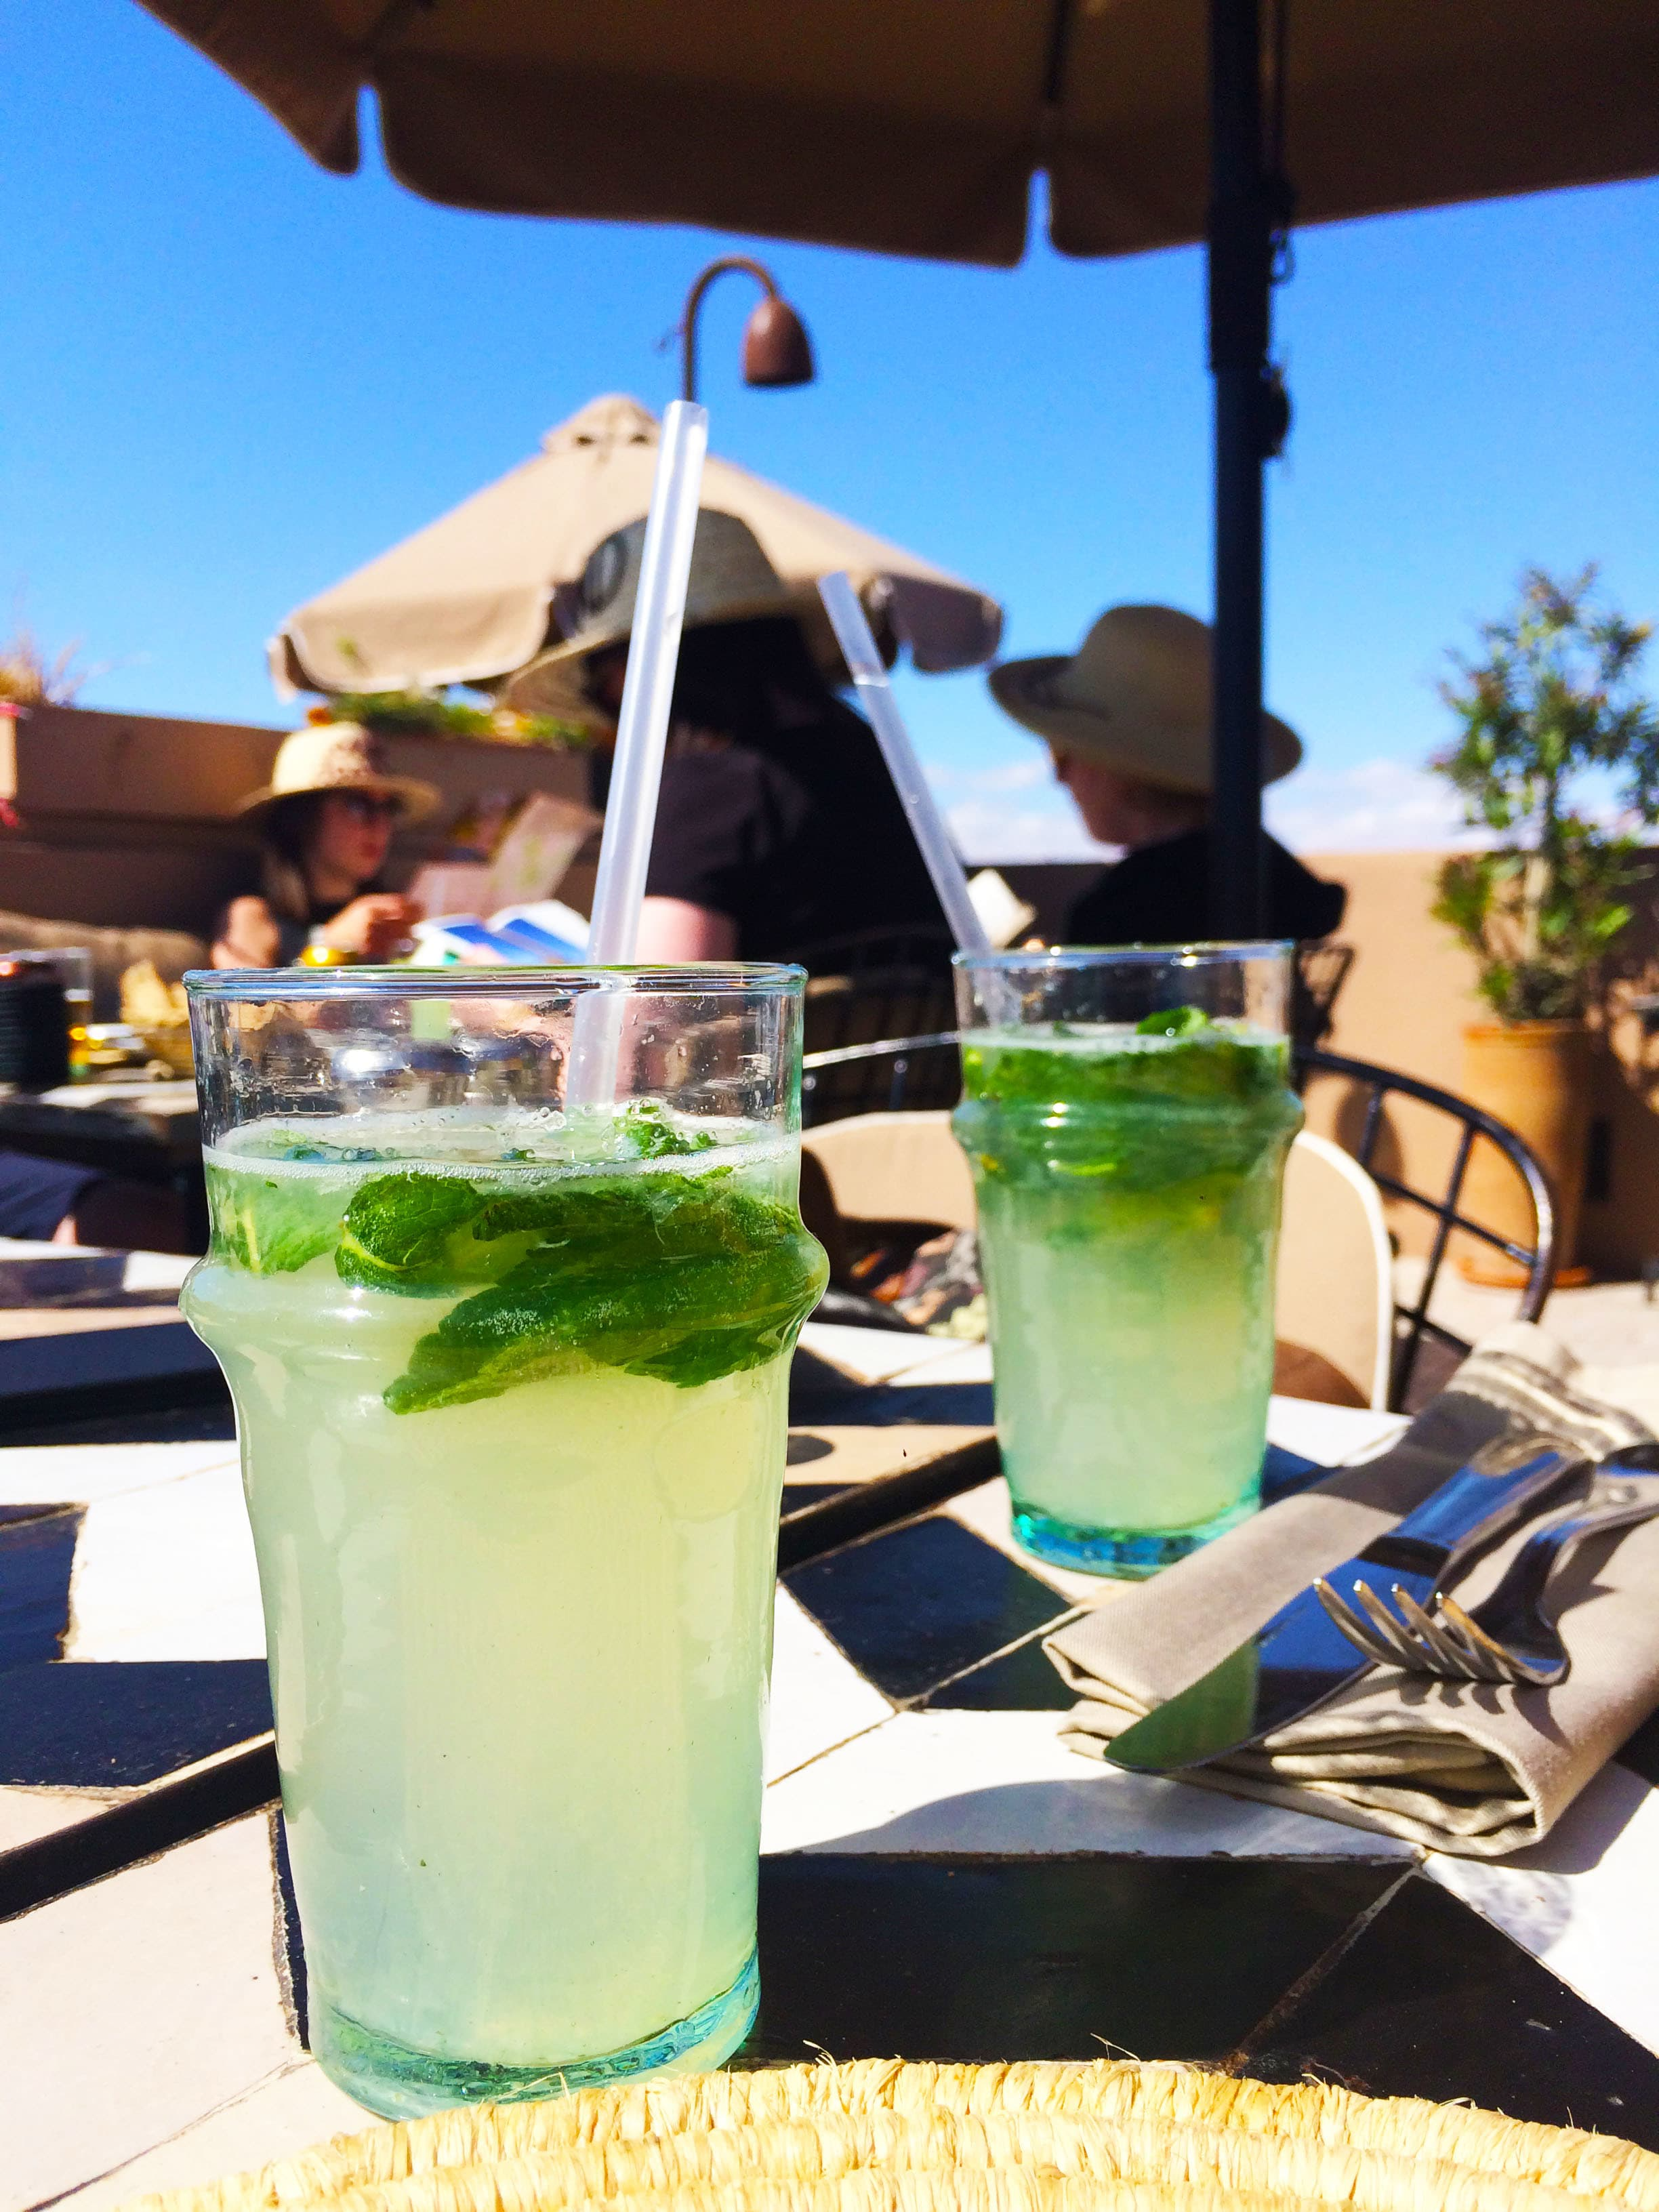 We also ordered refreshing fresh lemonade with mint.